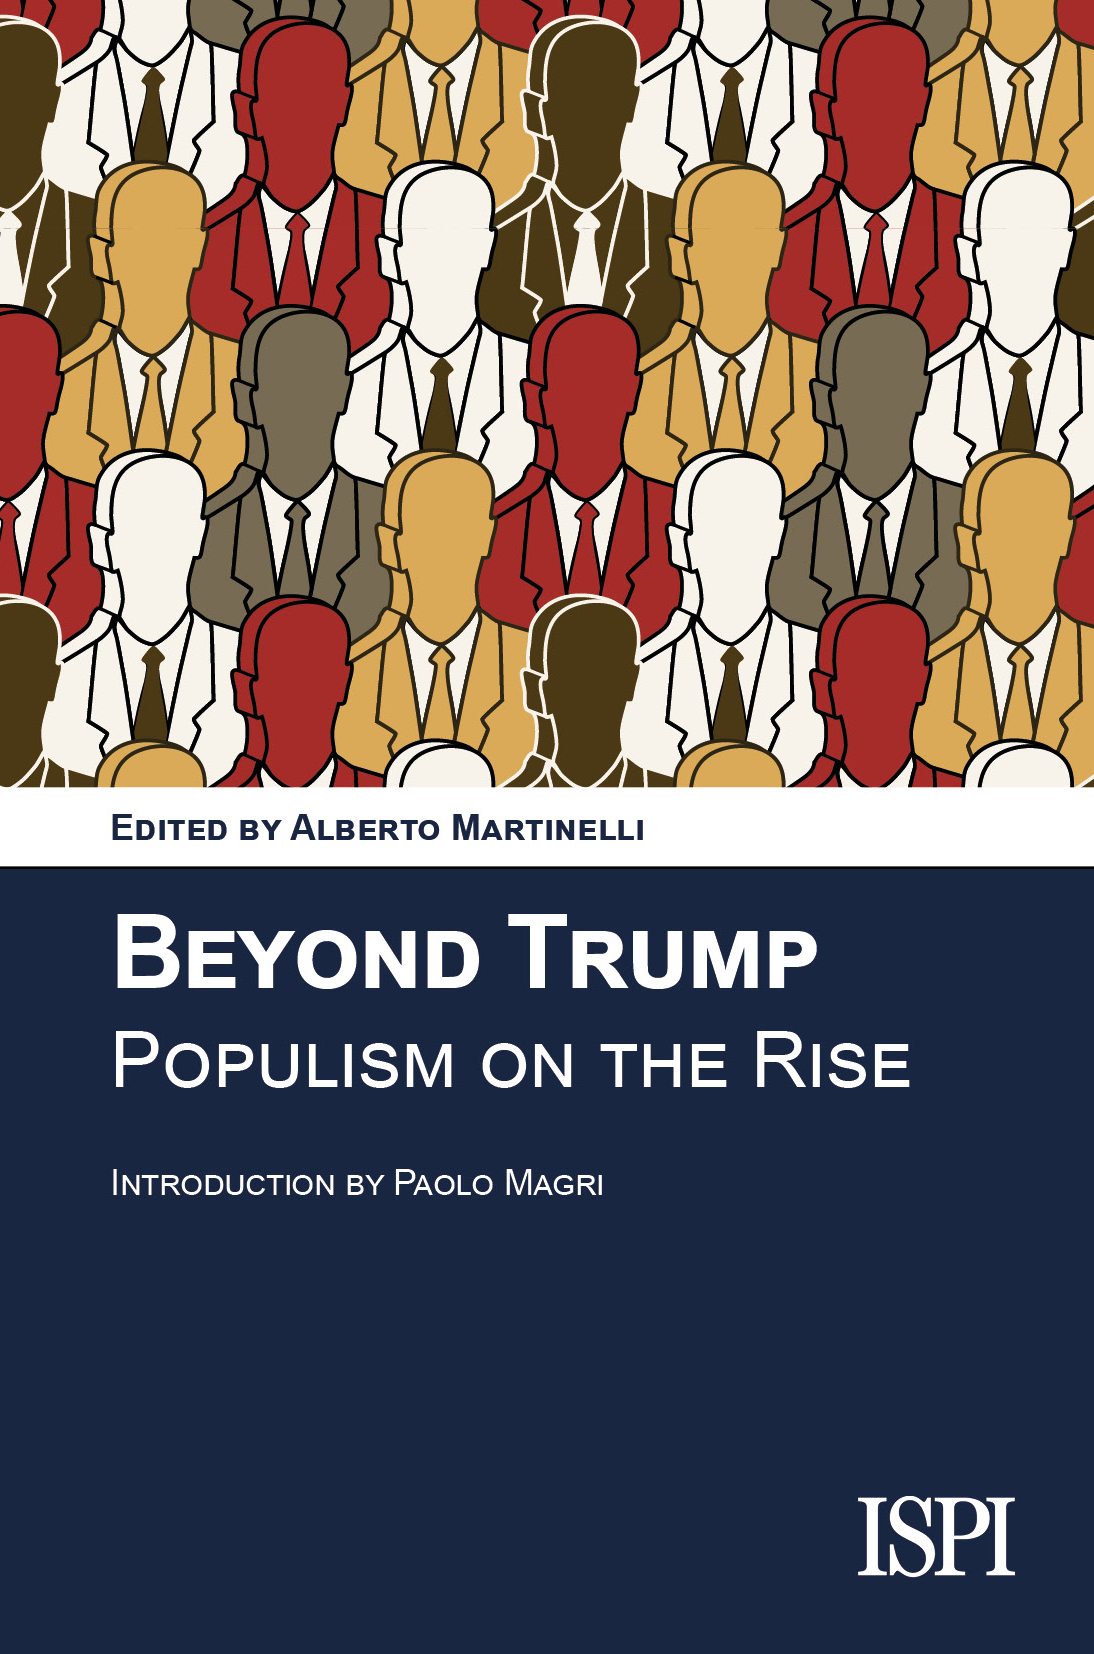 populism-on-the-ride-copertina-solo-fronte